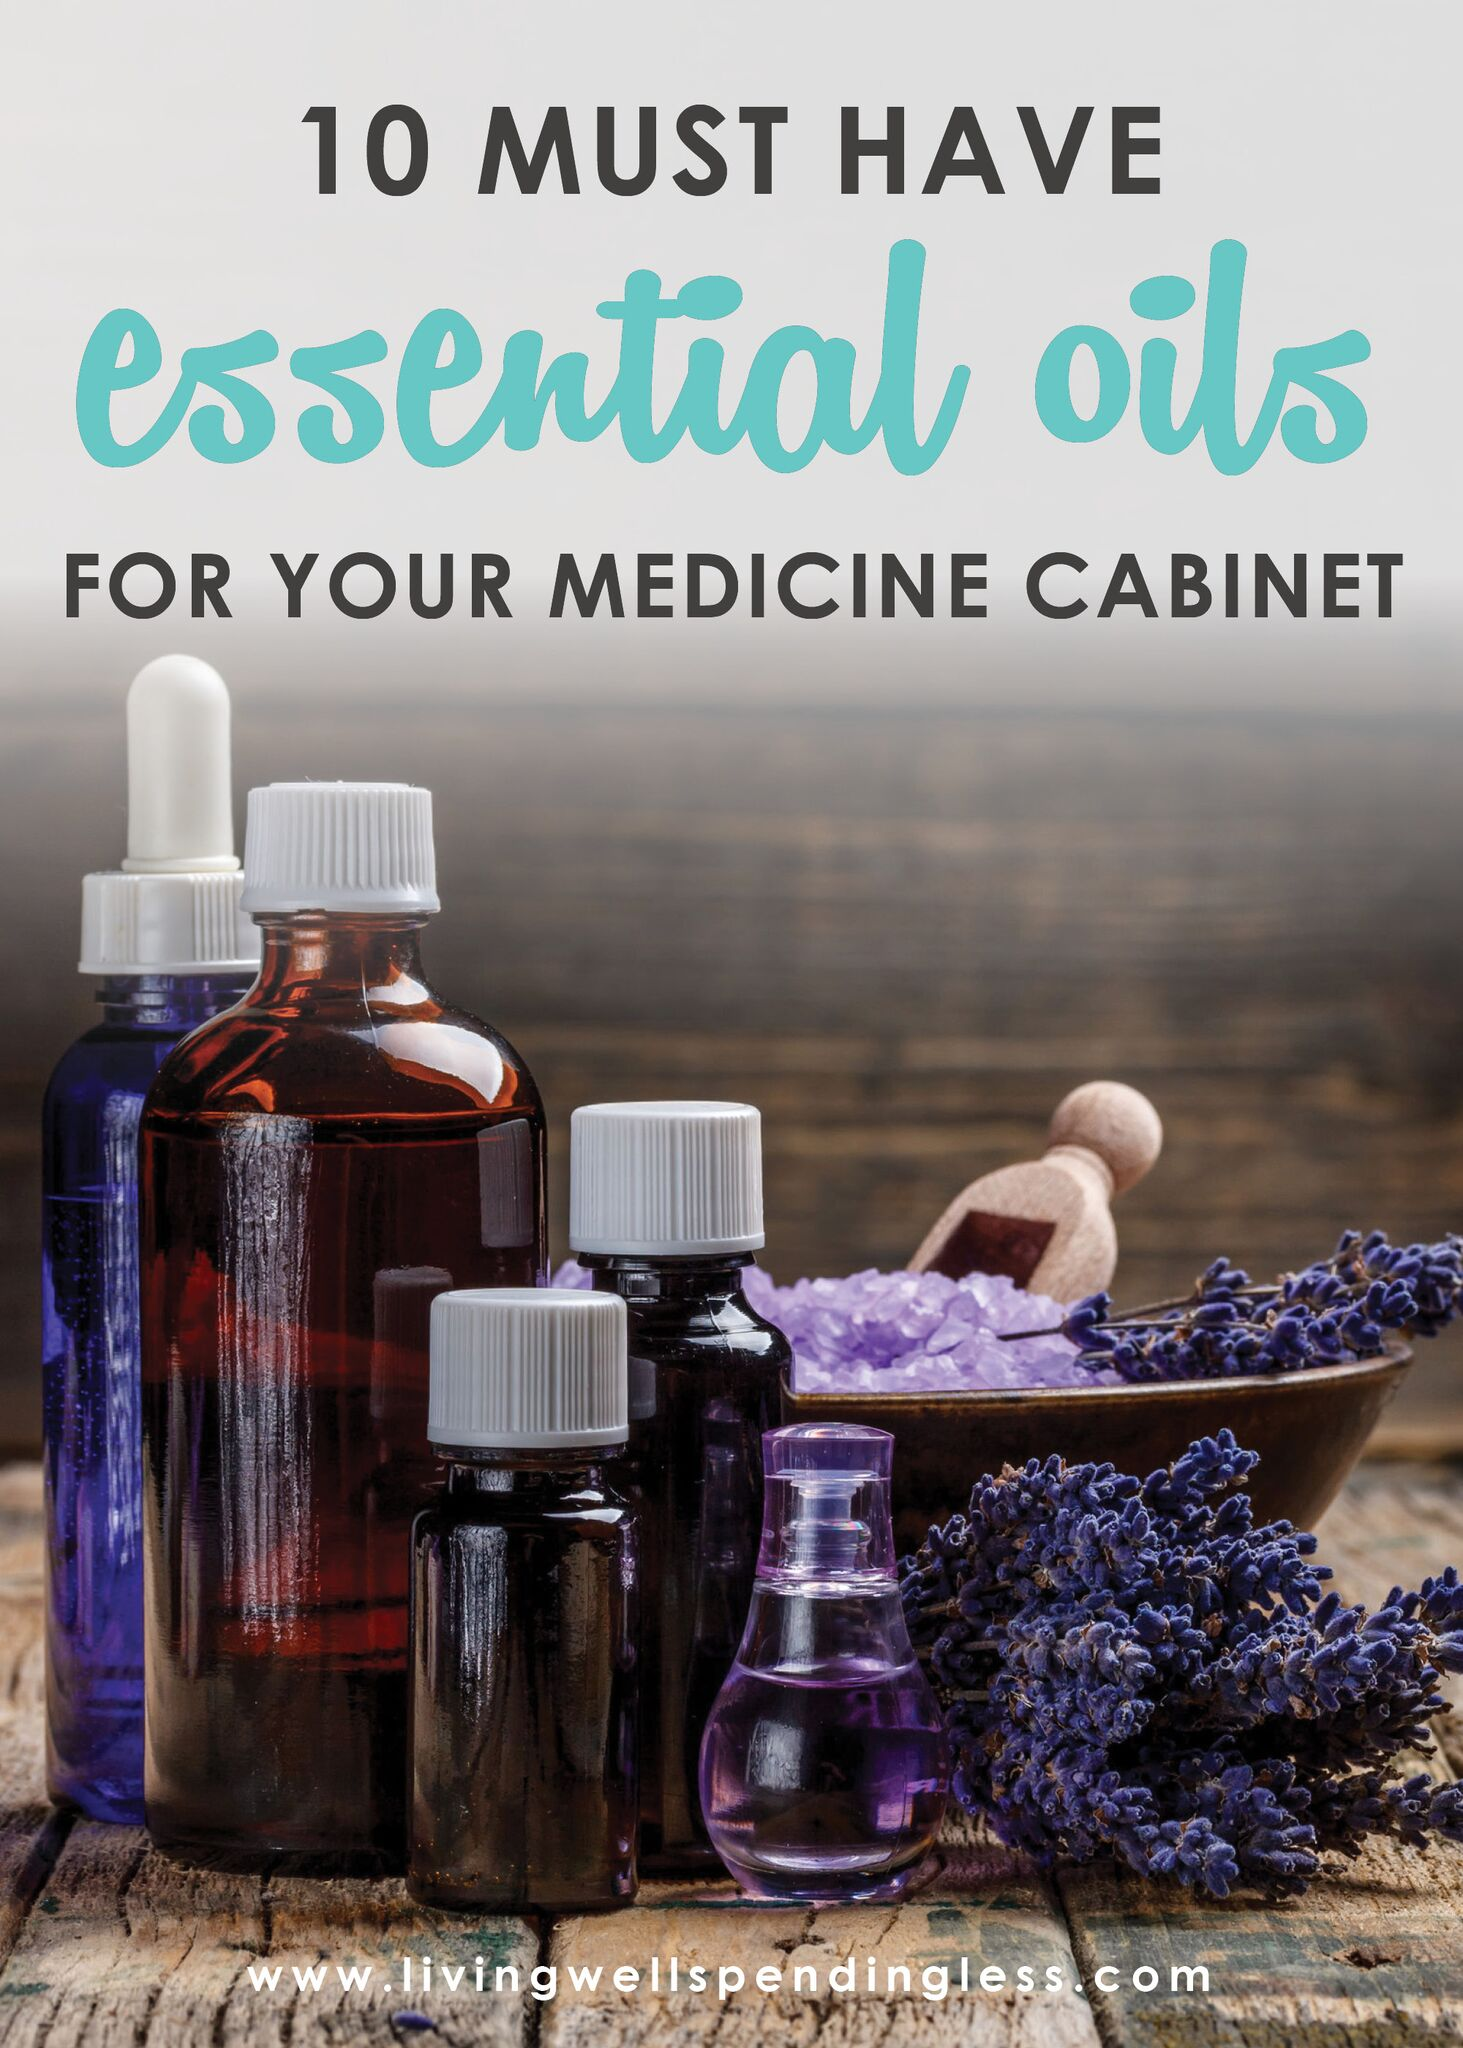 Looking for a natural remedy for your most common aches and pains? Essential oils can help, and we're sharing the 10 most useful ones for your health.